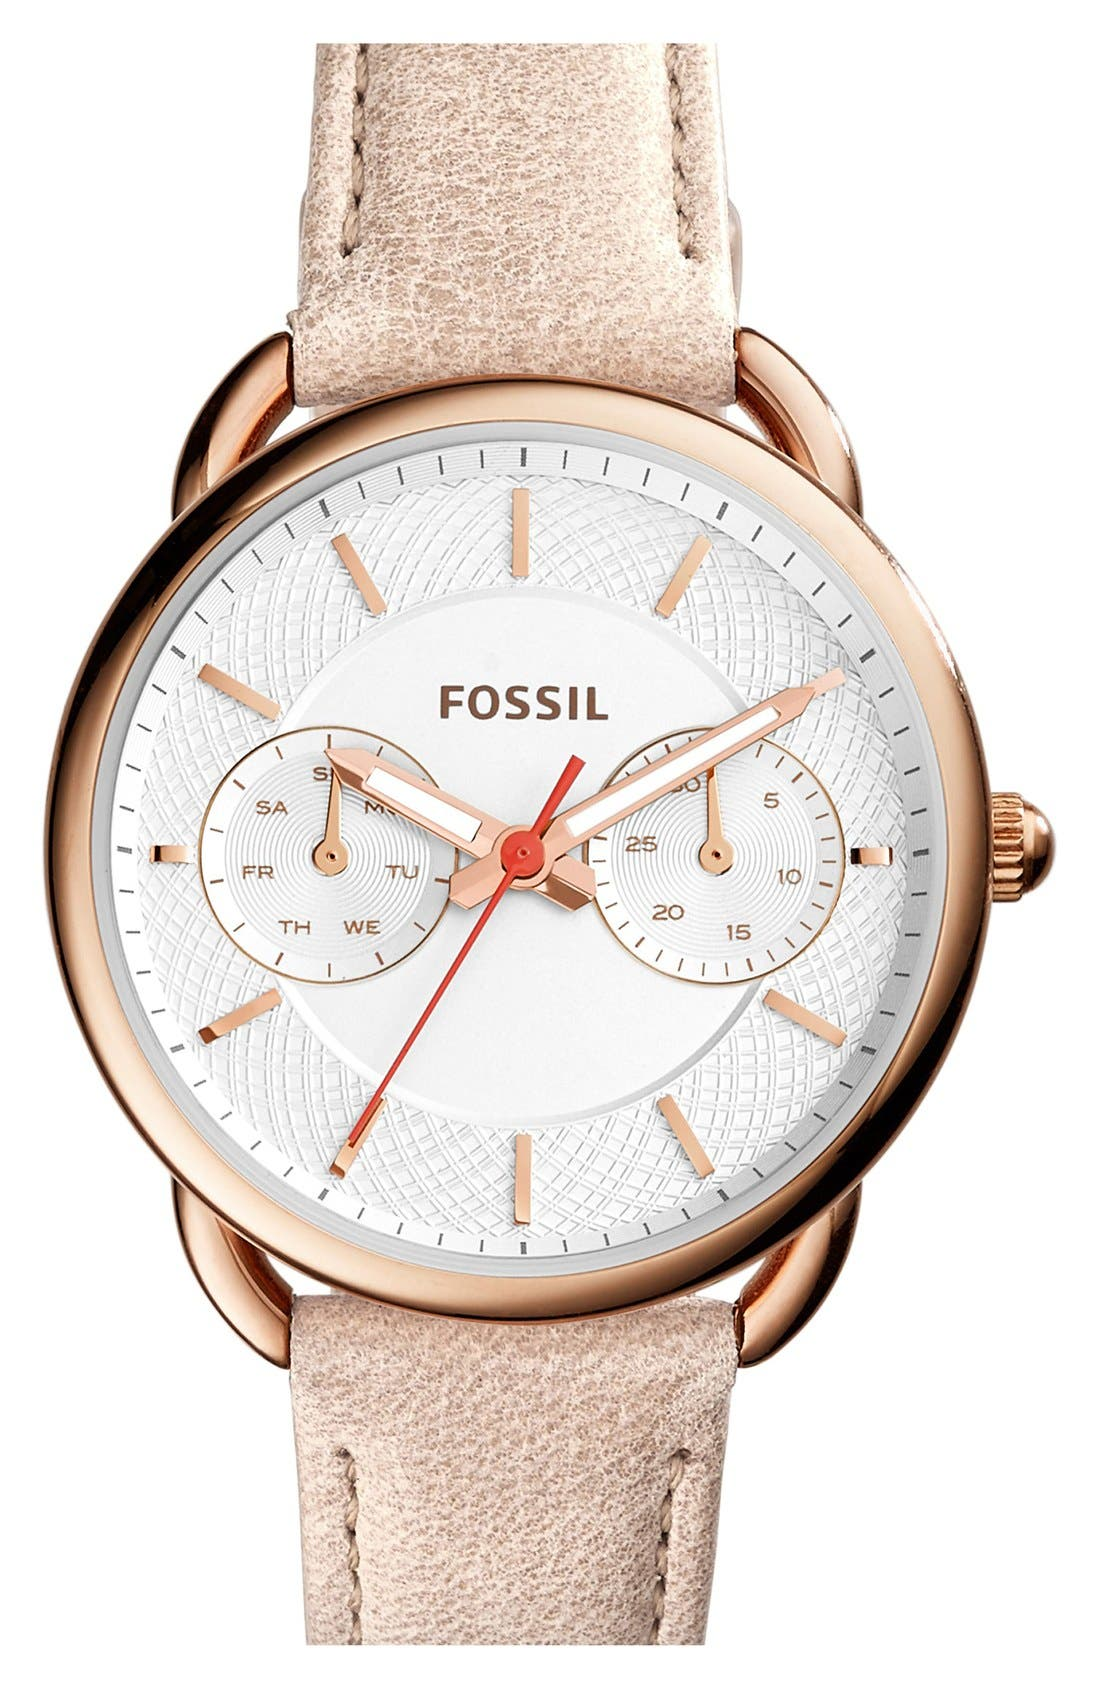 Fossil 'Tailor' Multifunction Leather Strap Watch, 35mm